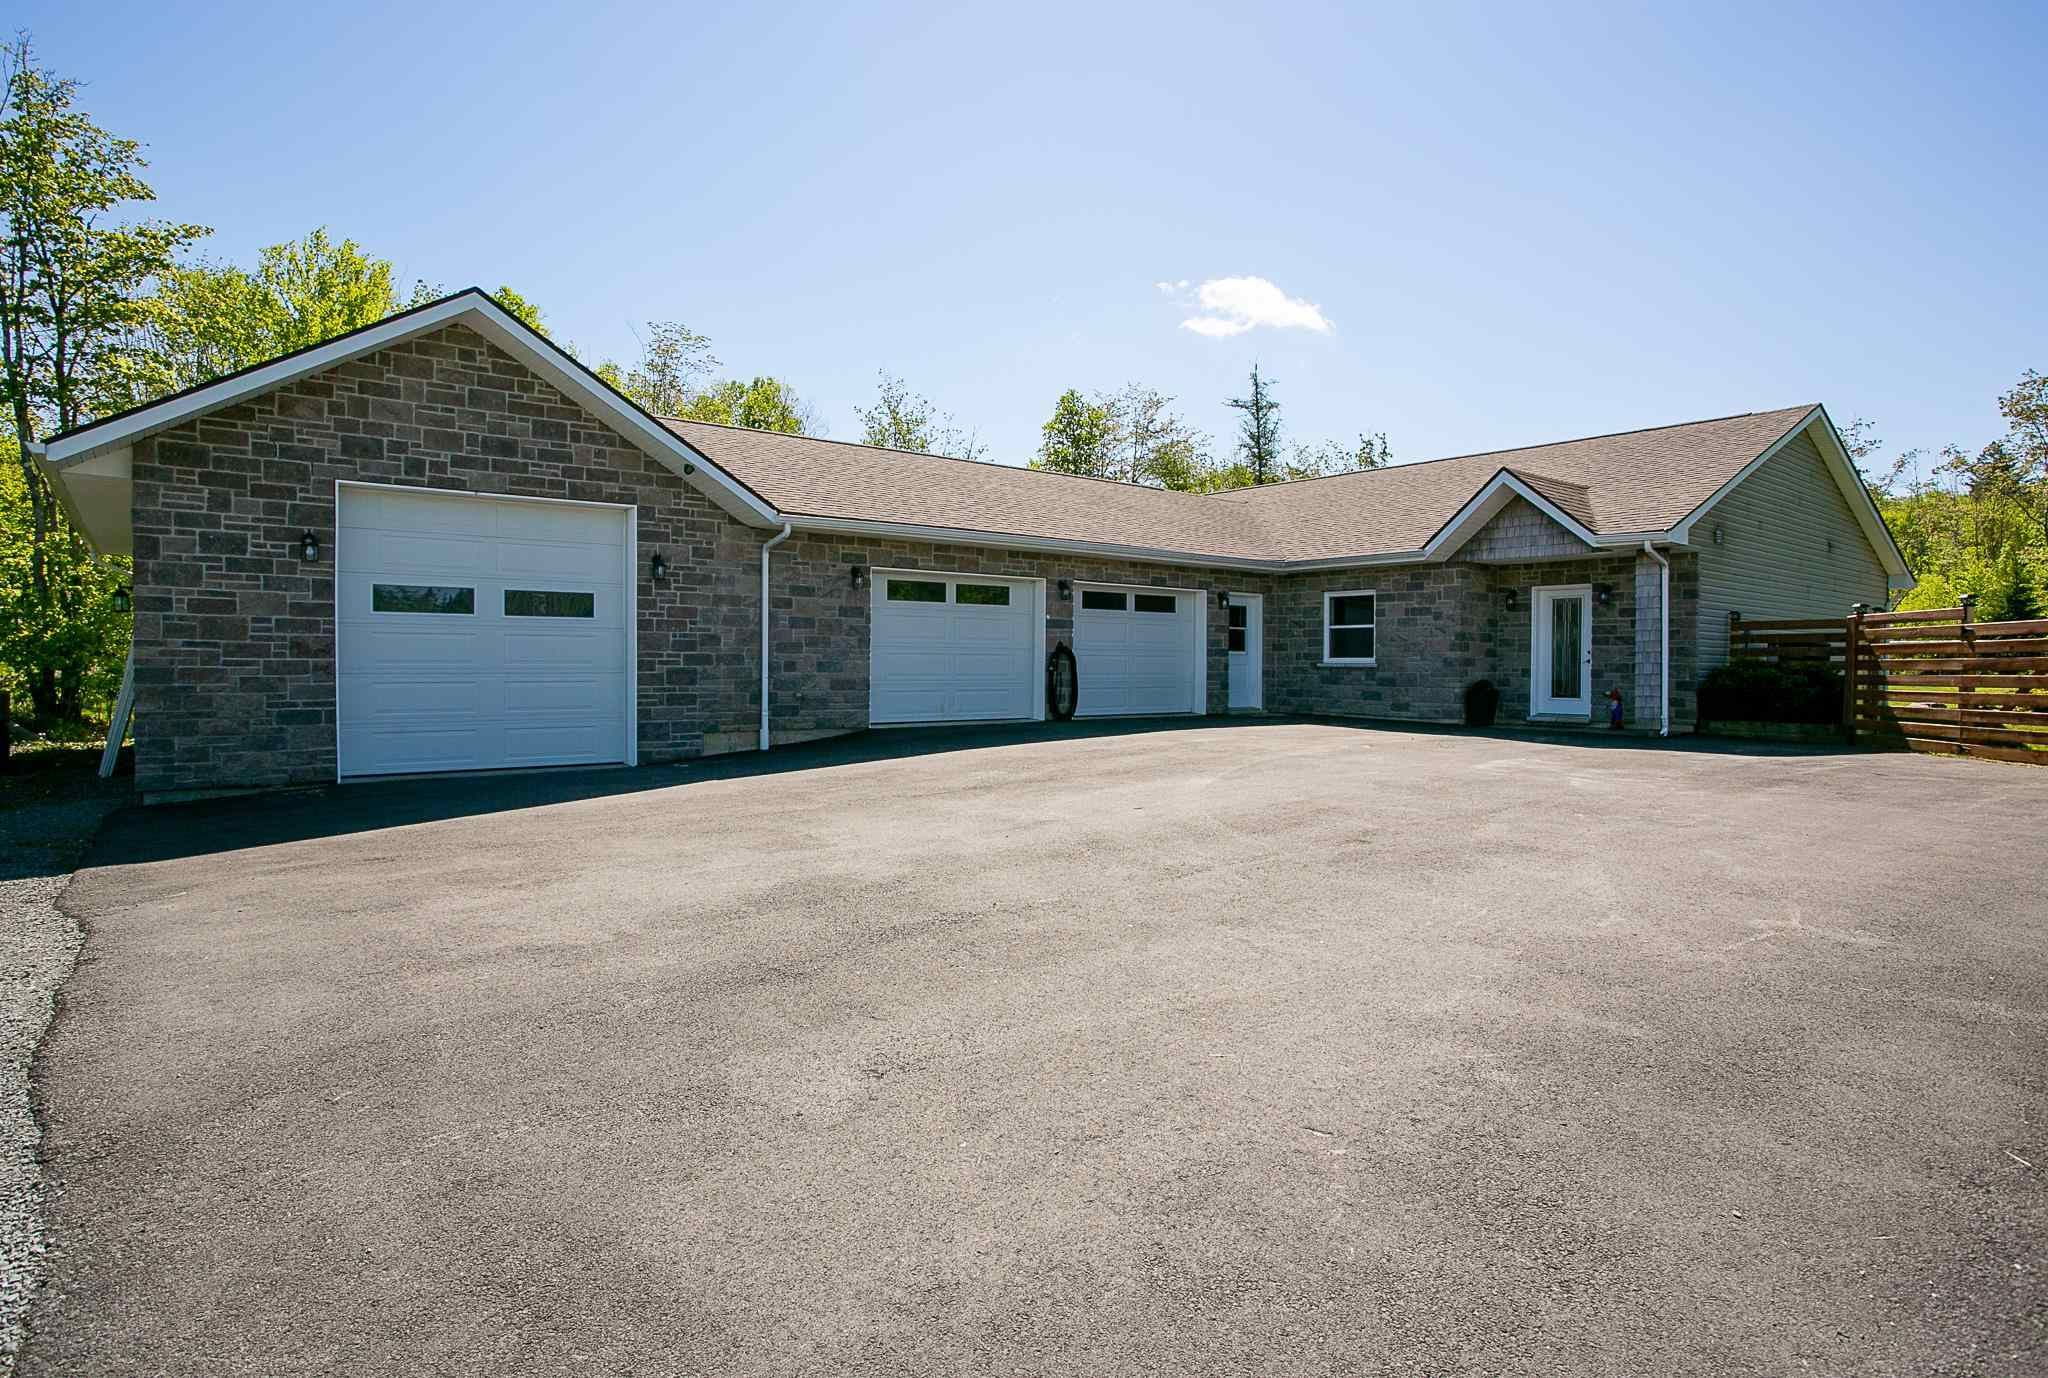 Main Photo: 75 Charles Drive in Mount Uniacke: 105-East Hants/Colchester West Residential for sale (Halifax-Dartmouth)  : MLS®# 202113923